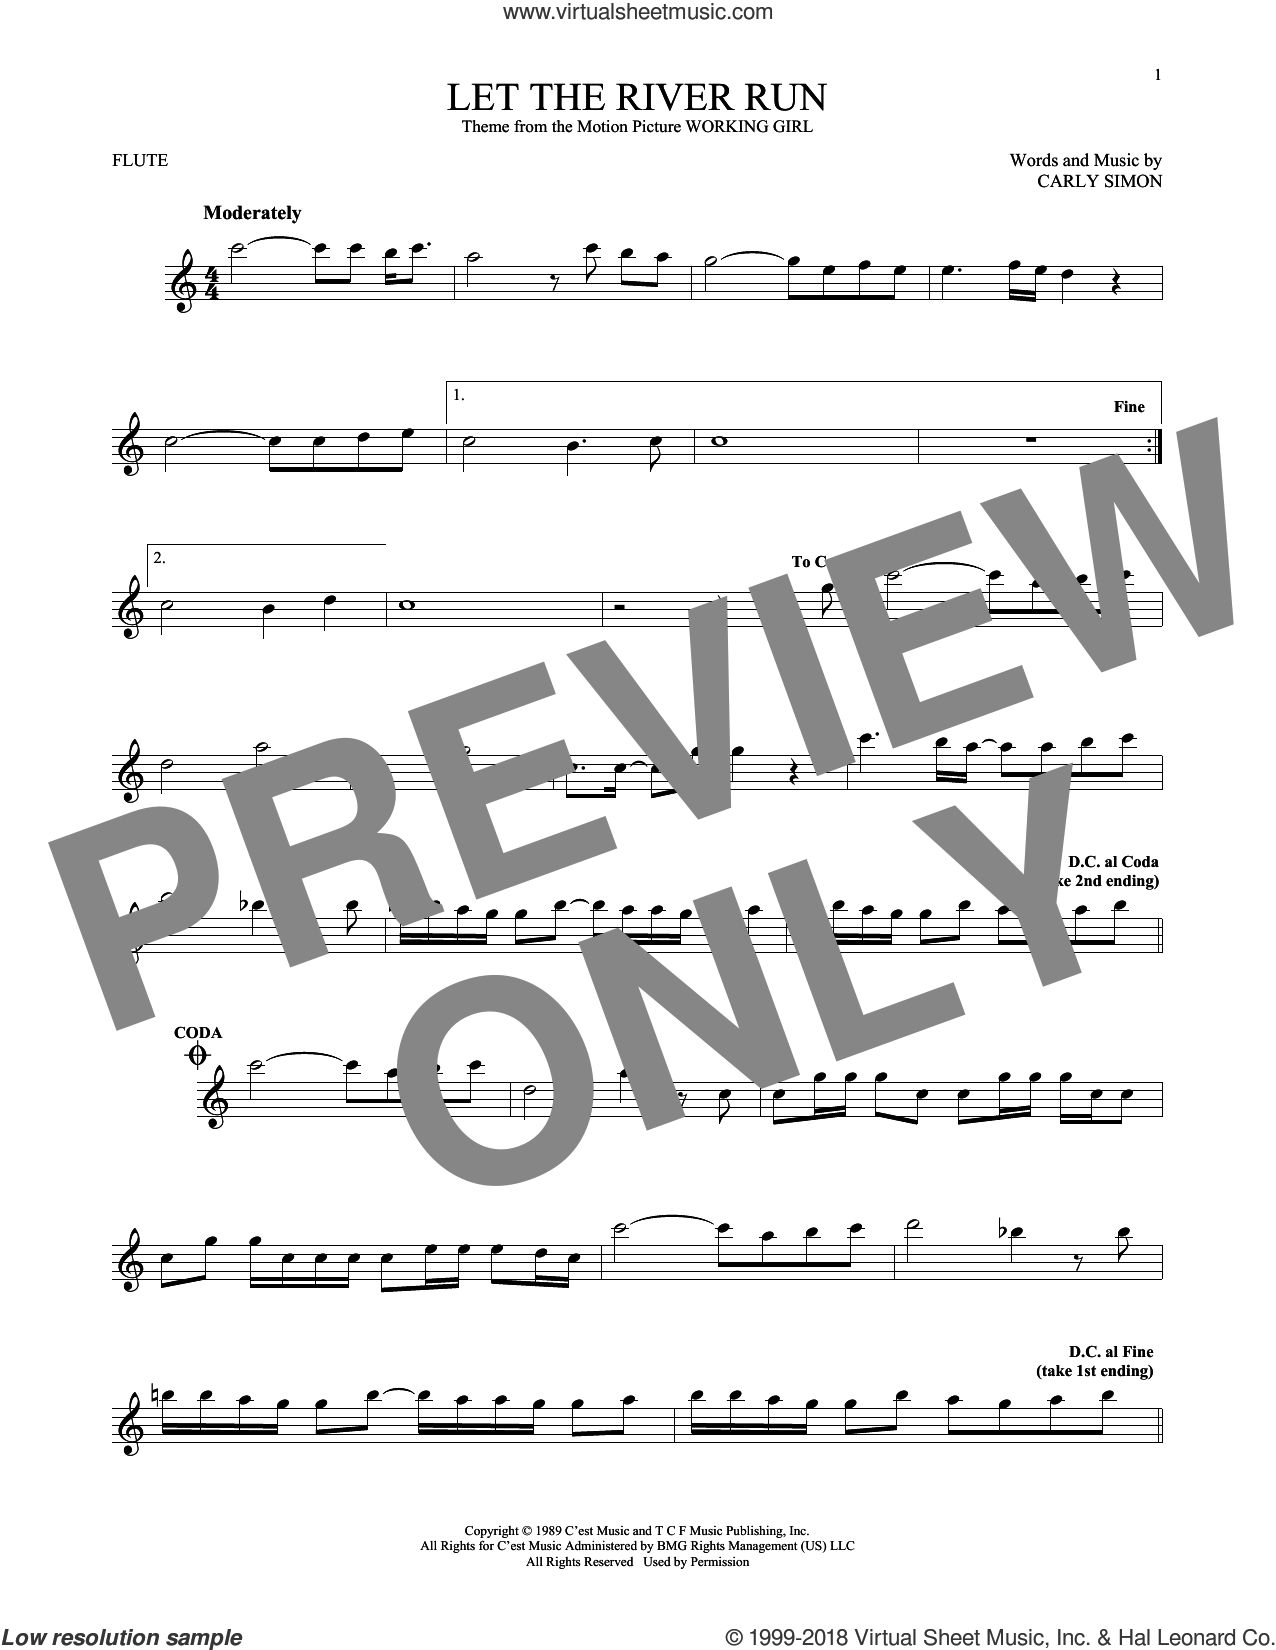 Let The River Run sheet music for flute solo by Carly Simon, intermediate skill level